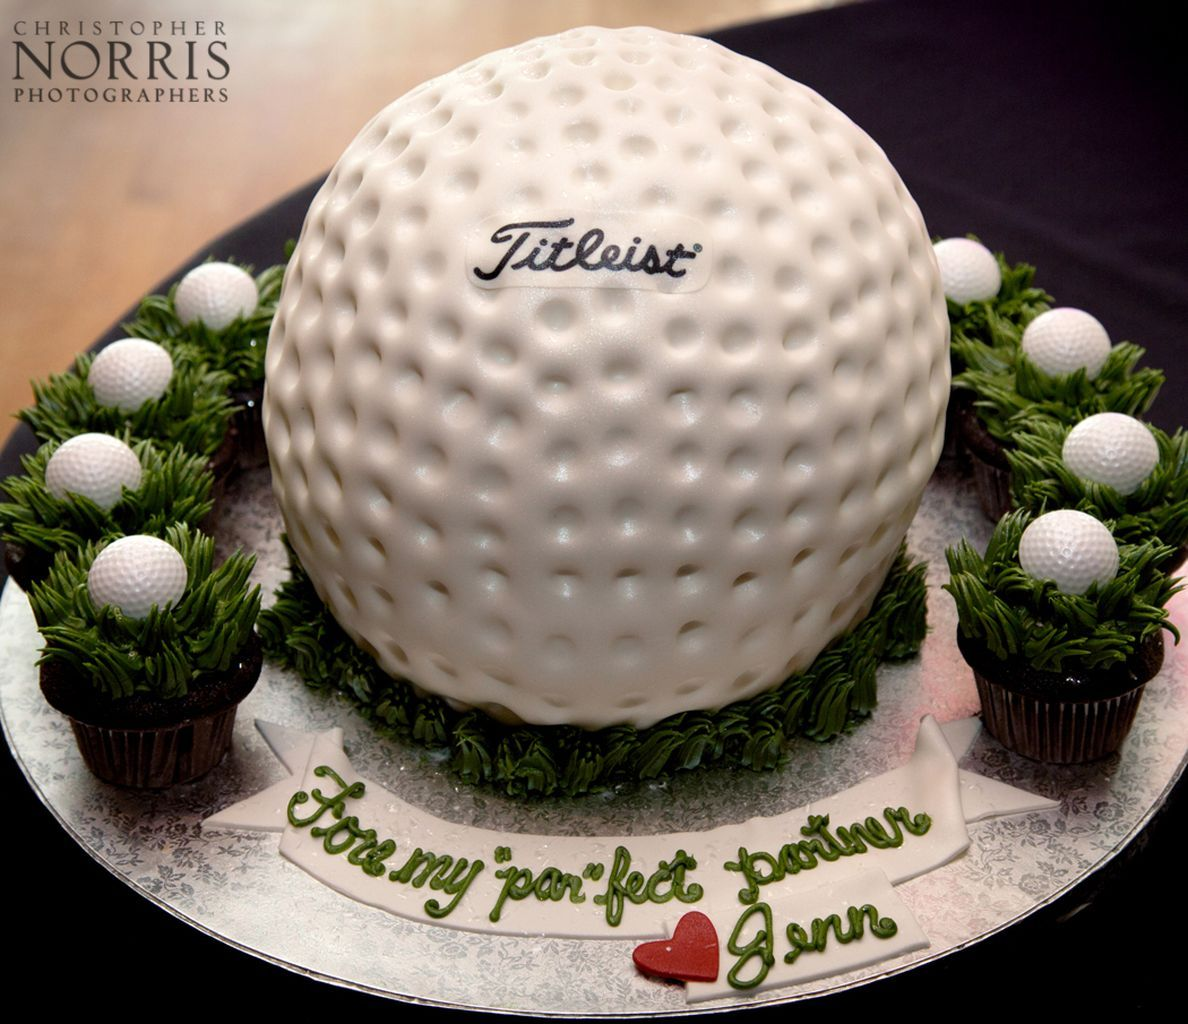 Grooms Wedding Cake Ideas: 24 Best Creative Golf Groom Cake Ideas You Can Try On Your